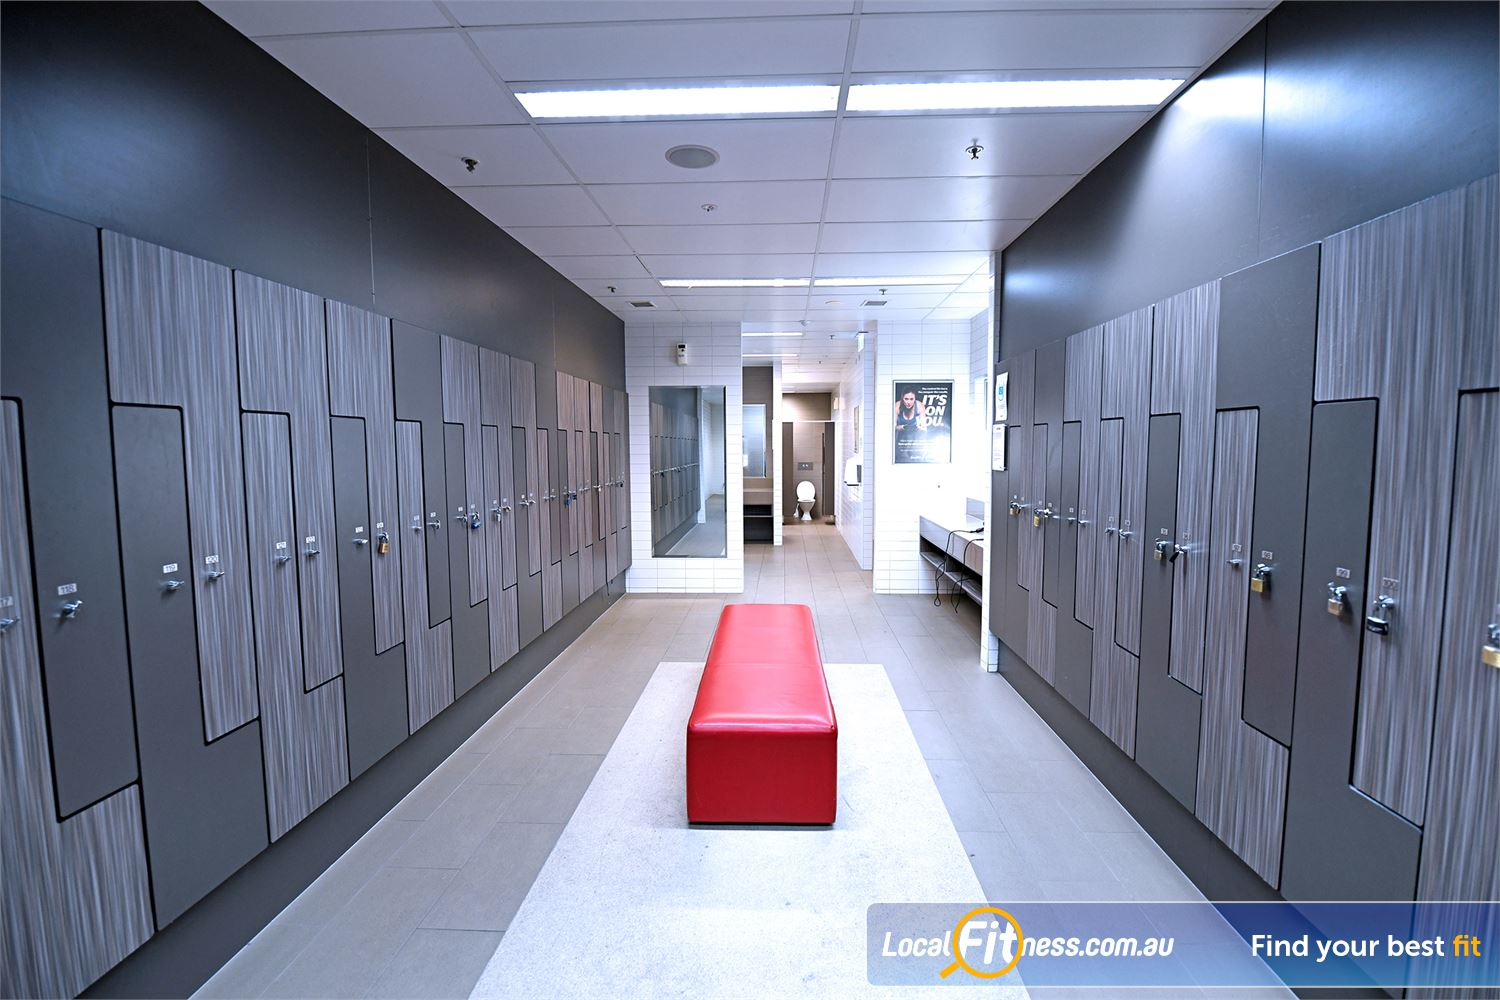 Goodlife Health Clubs Point Cook Clean and pristine change room facilities.